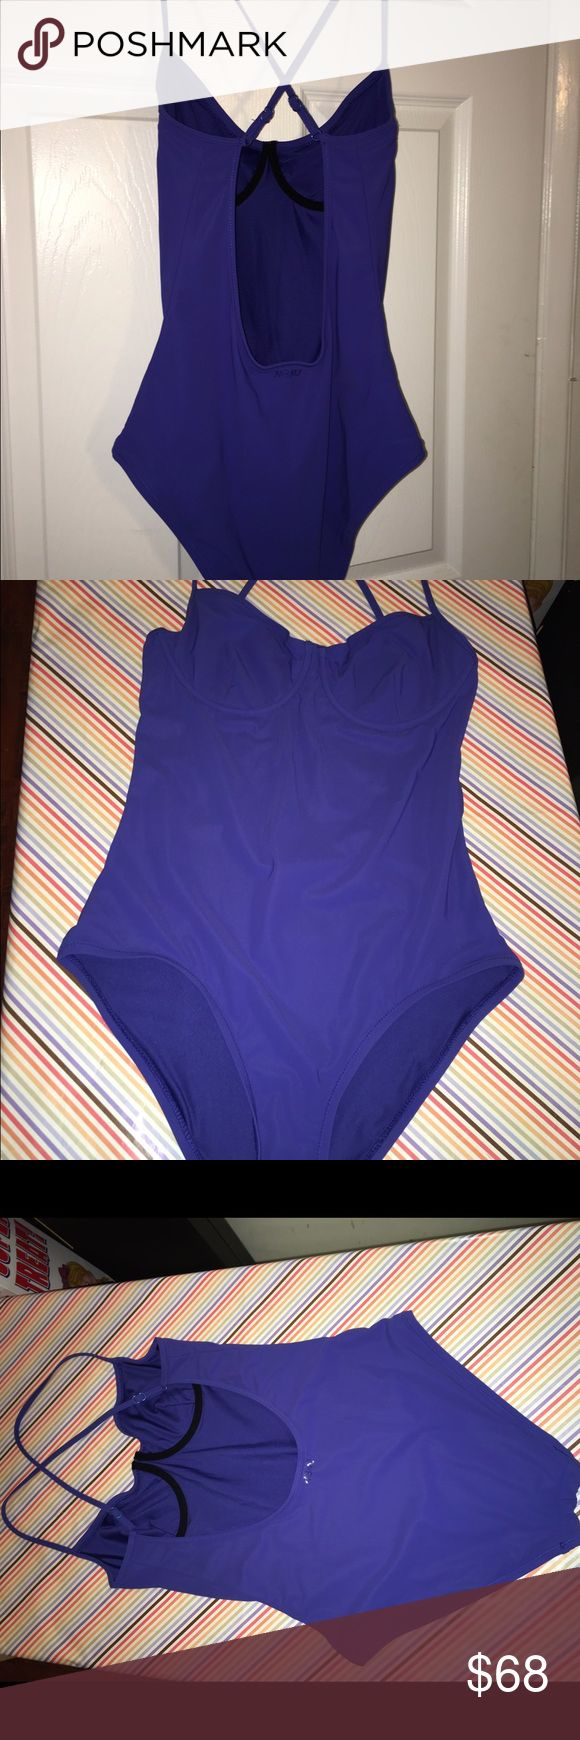 """Marc by Marc Jacobs Underwire One Piece Bikini Gorgeous royal purple sexy underwire one Piece Bikini with elegant neckline, adjustable thin criss-cross straps and open back. Worn once! Excellent barely worn condition with no damage, fading, stains, odors. Guaranteed clean & authentic. No wear to logo or tags. Measurements (unstretched): chest: 30"""" length: 28"""" waist: 24"""" hips: 30"""" leg opening: 10""""flat 20""""around. Marc by Marc Jacobs Swim One Pieces"""